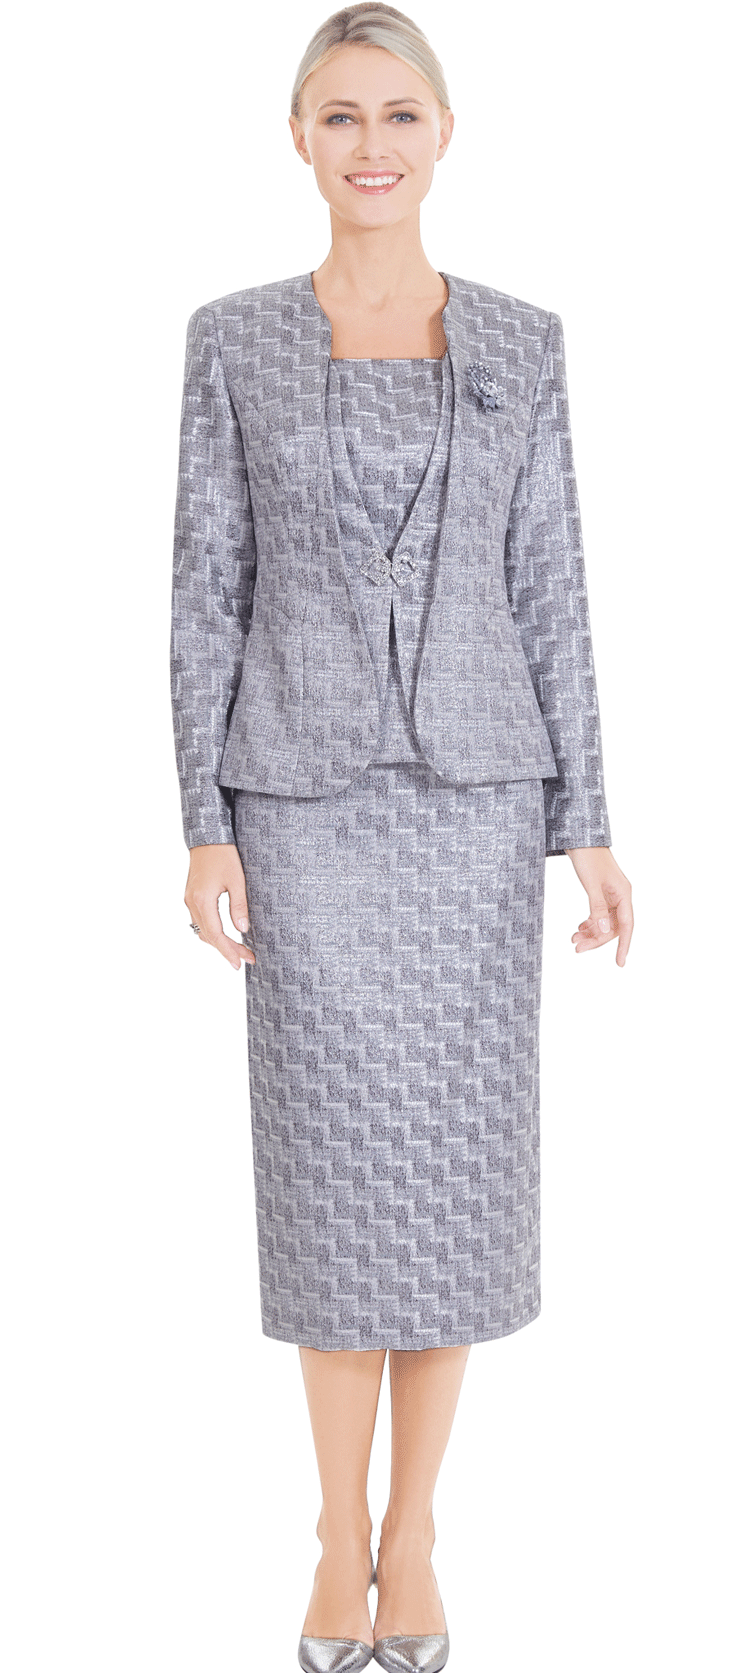 Nina Massini Suit 2576-Silver - Church Suits For Less